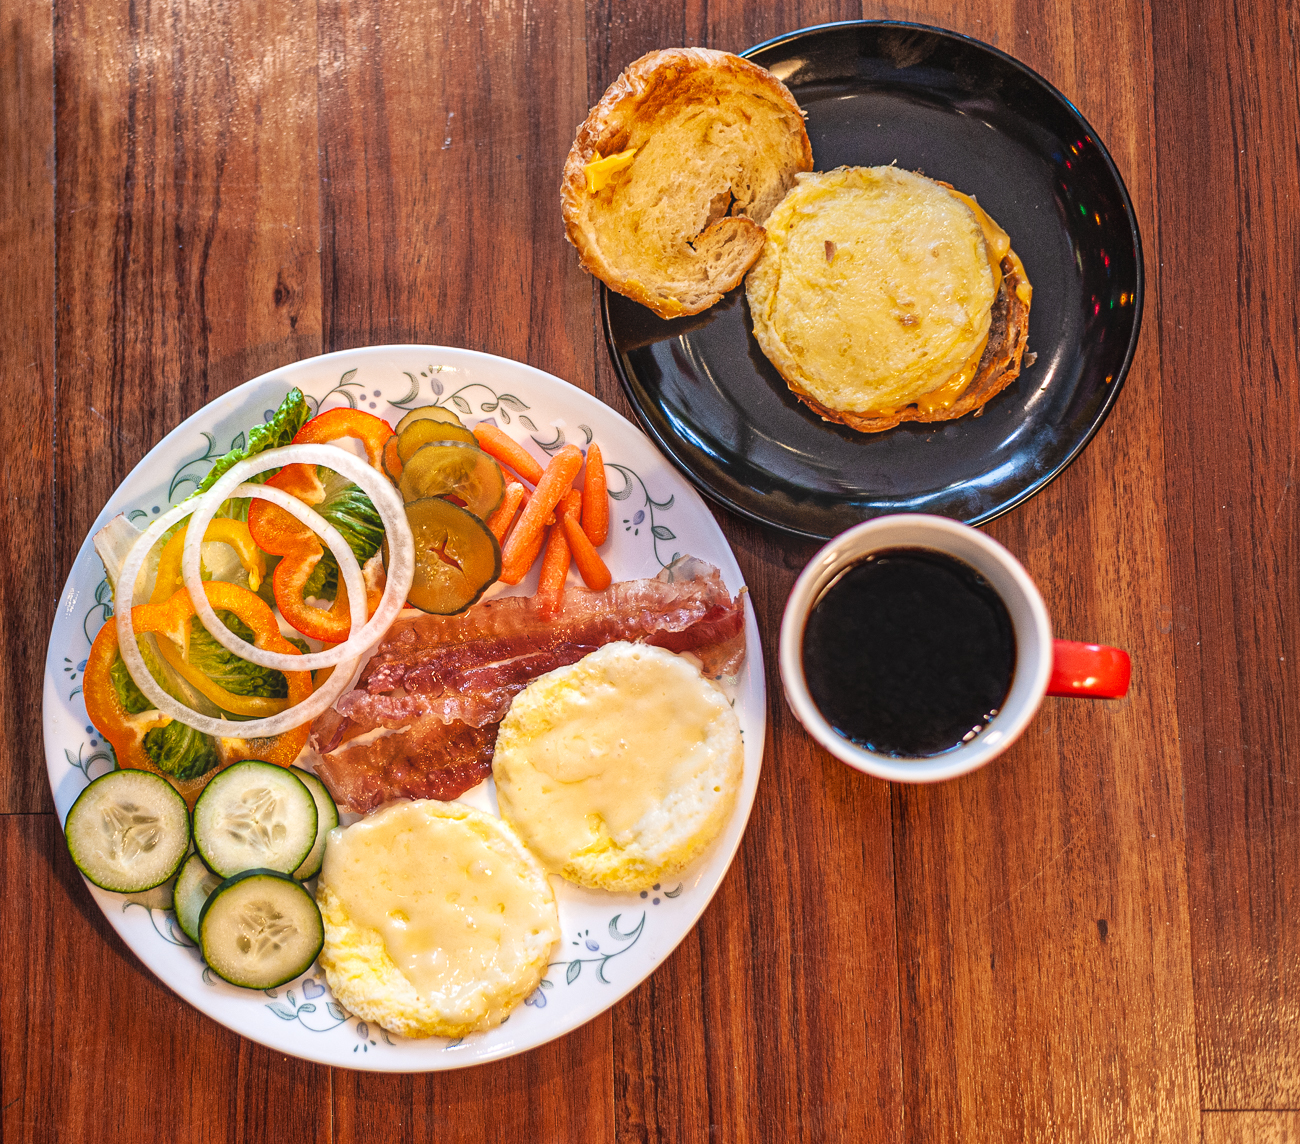 Breakfast Plate, black coffee, and breakfast sandwich{ }/ Image: Kellie Coleman // Published: 1.31.21